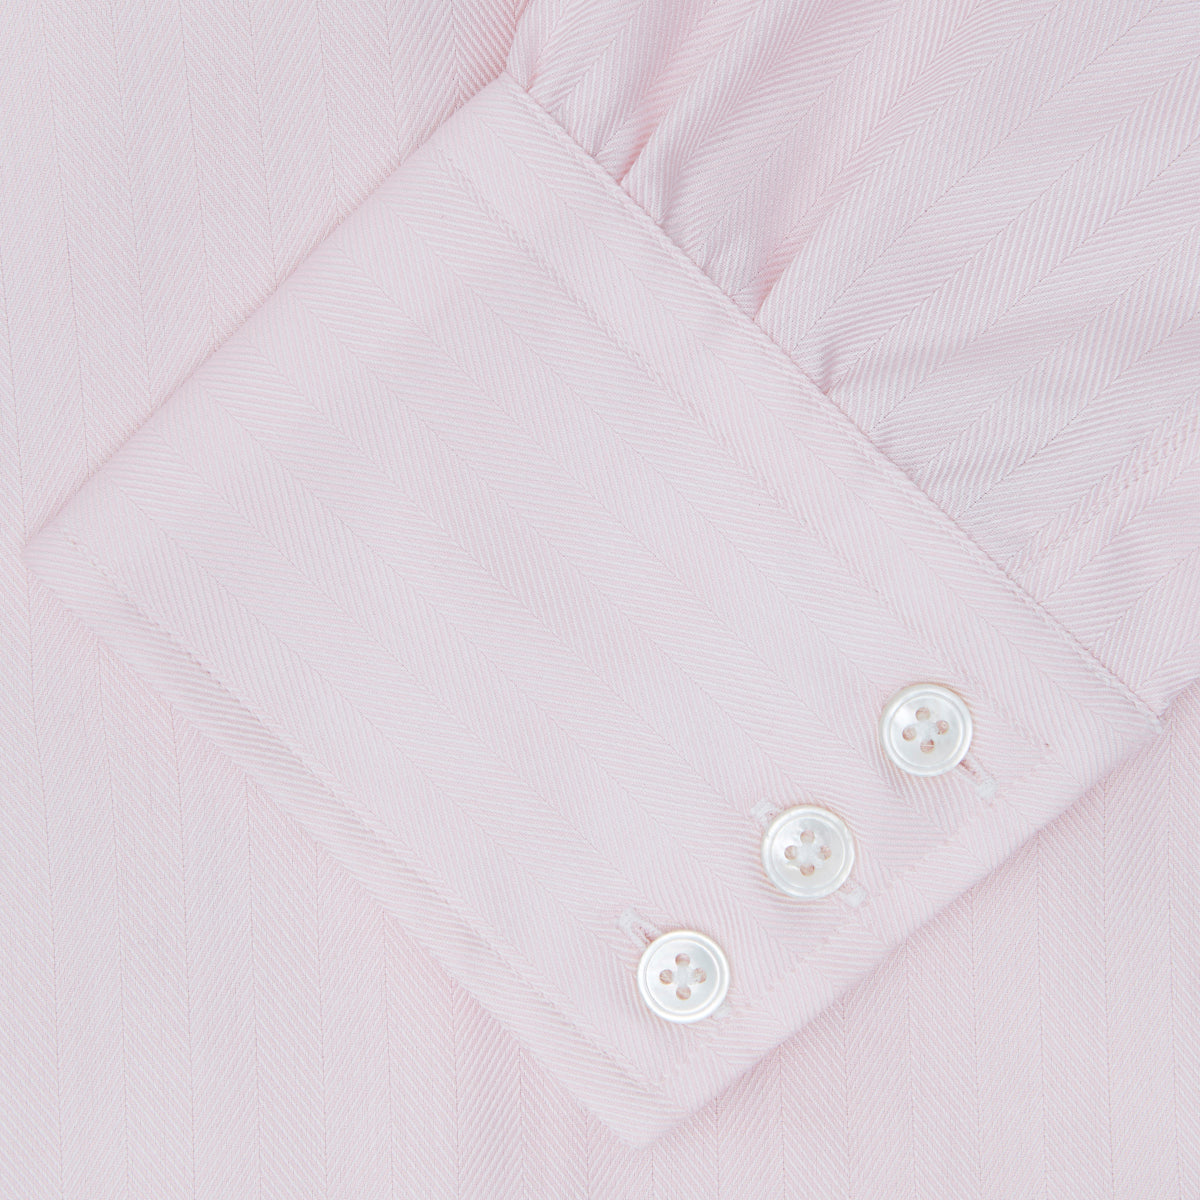 Pink Herringbone Superfine Cotton Shirt with T&A Collar and 3-Button Cuffs